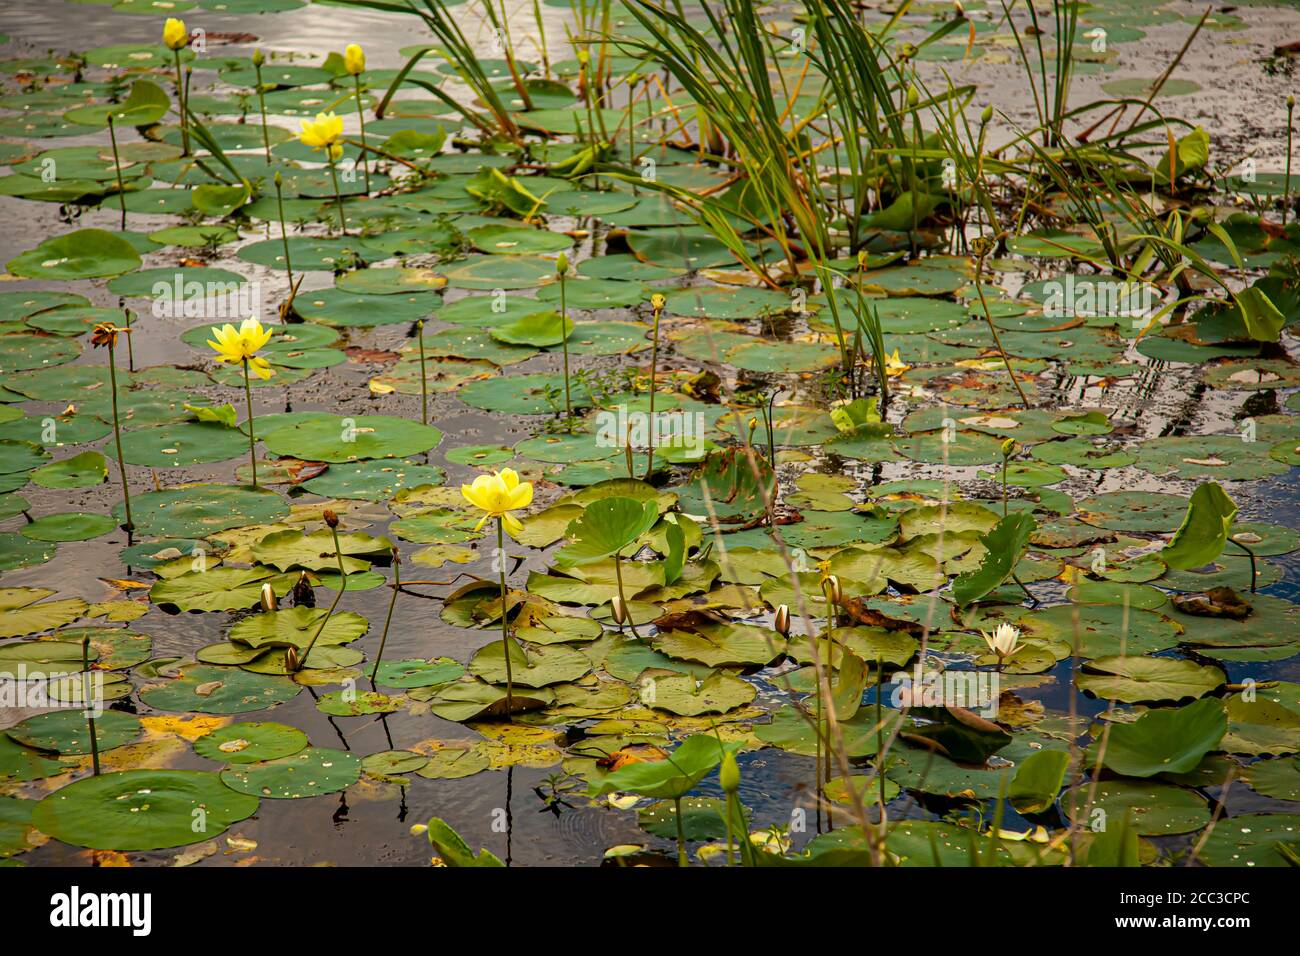 A close up view of a wetland featuring water lilies floating on surface of the water as well as grass and reeds. The lily pads have white and yellow f Stock Photo